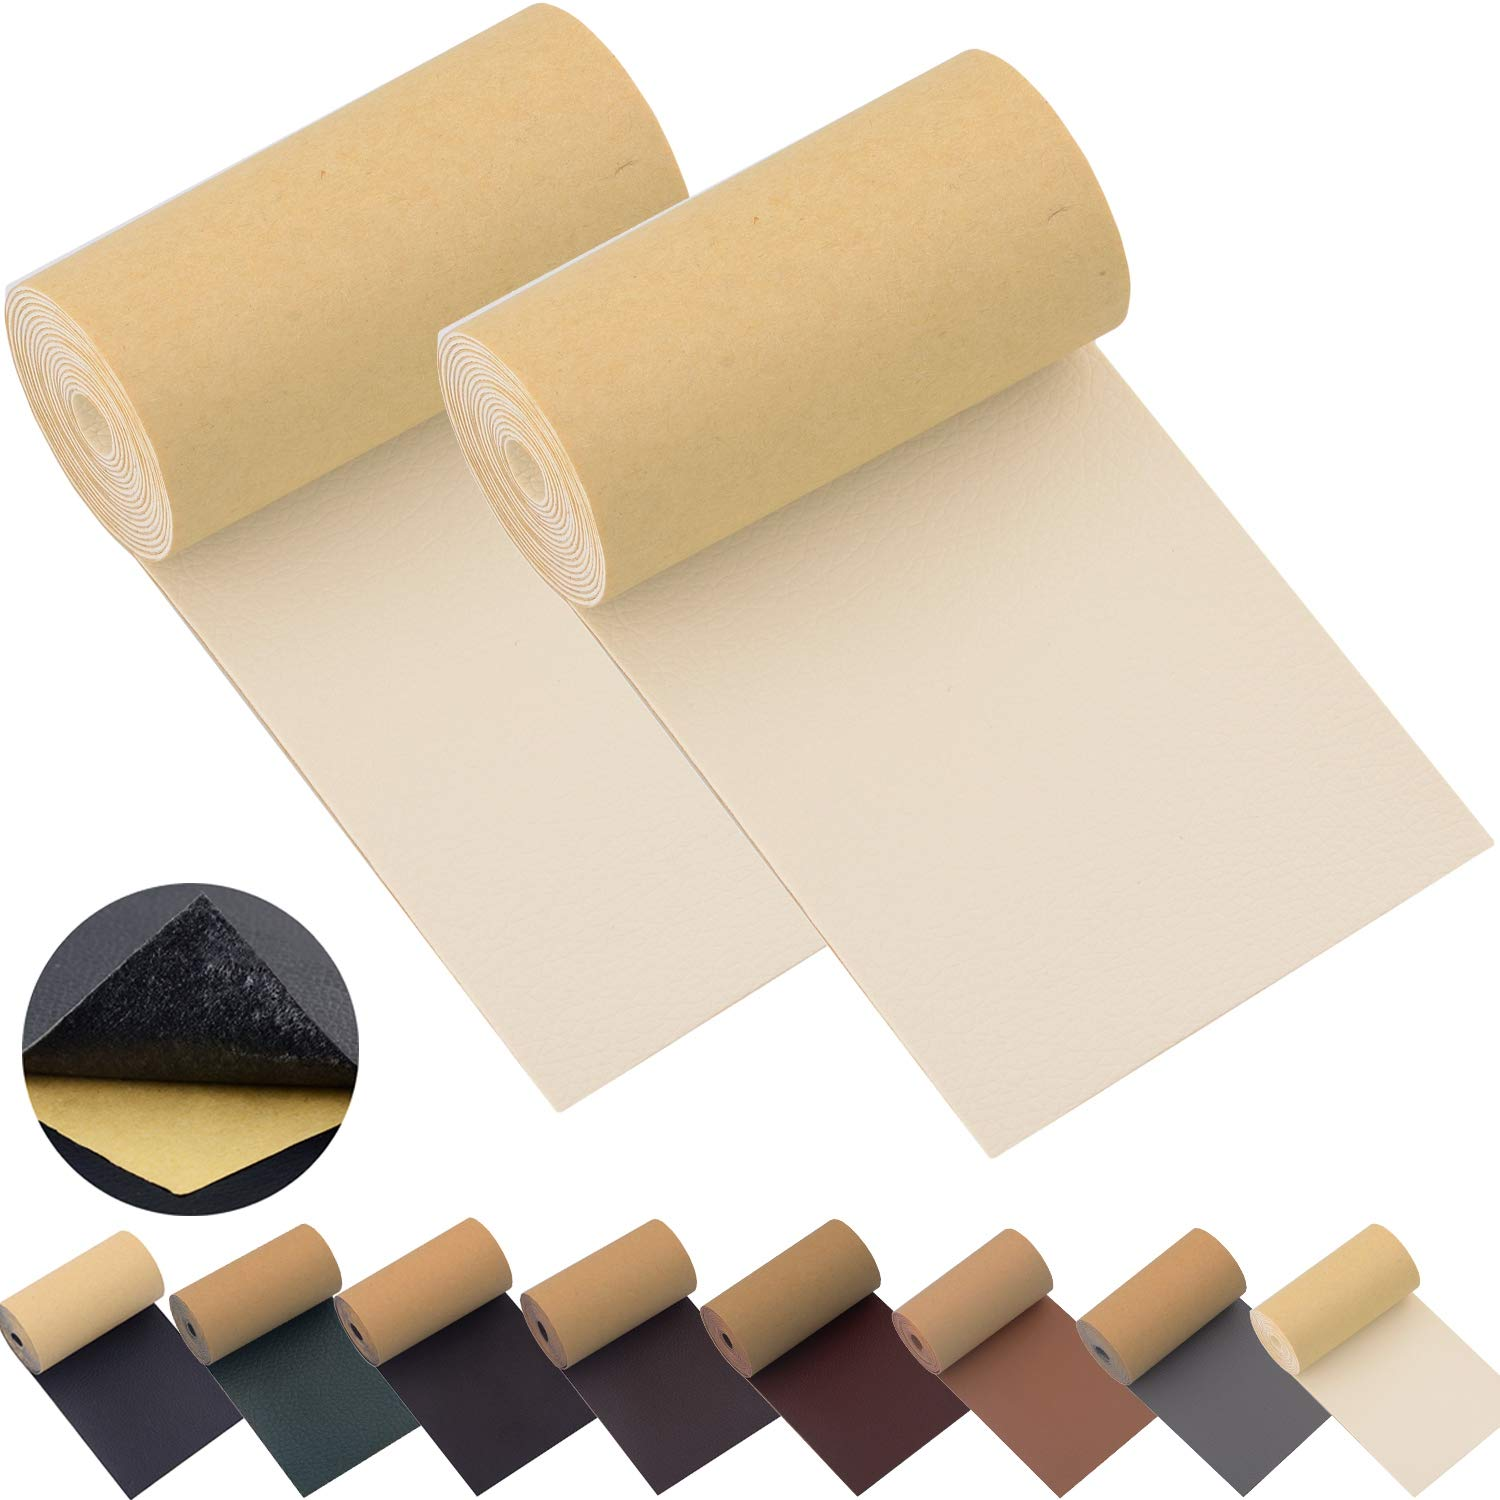 Leather Repair Patch Tape for Couches 2packs 3X55inch Self-Adhesive for Furniture Sofa Vinyl Car Seats Couch Chairs Shoes Down Jackets First Aid Patch Fix Tear Kit (Beige White, 3X55 inch)